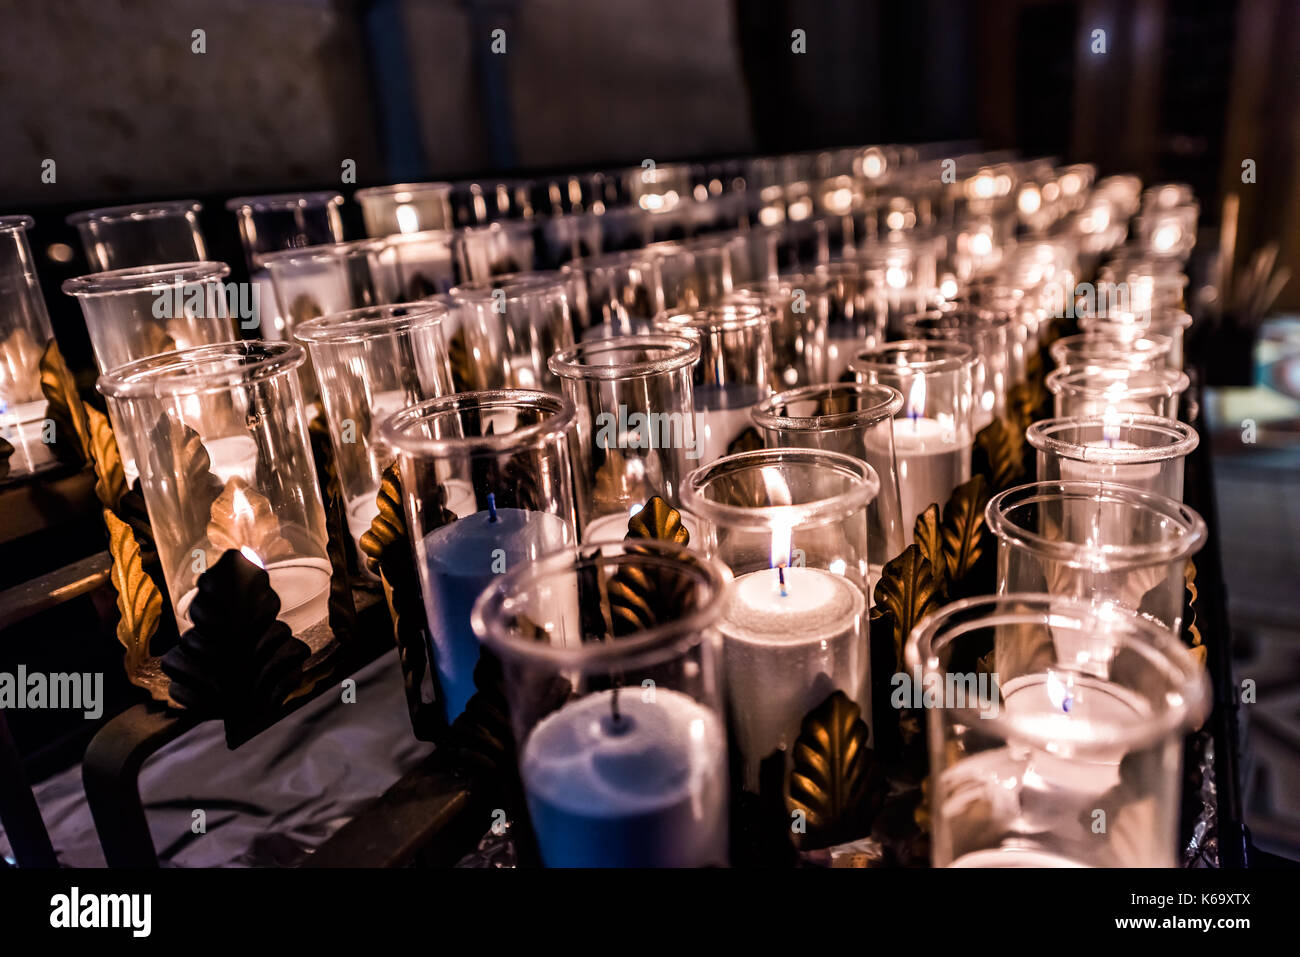 Closeup side pattern of many white religious votive candles with yellow flame in church or cathedral - Stock Image